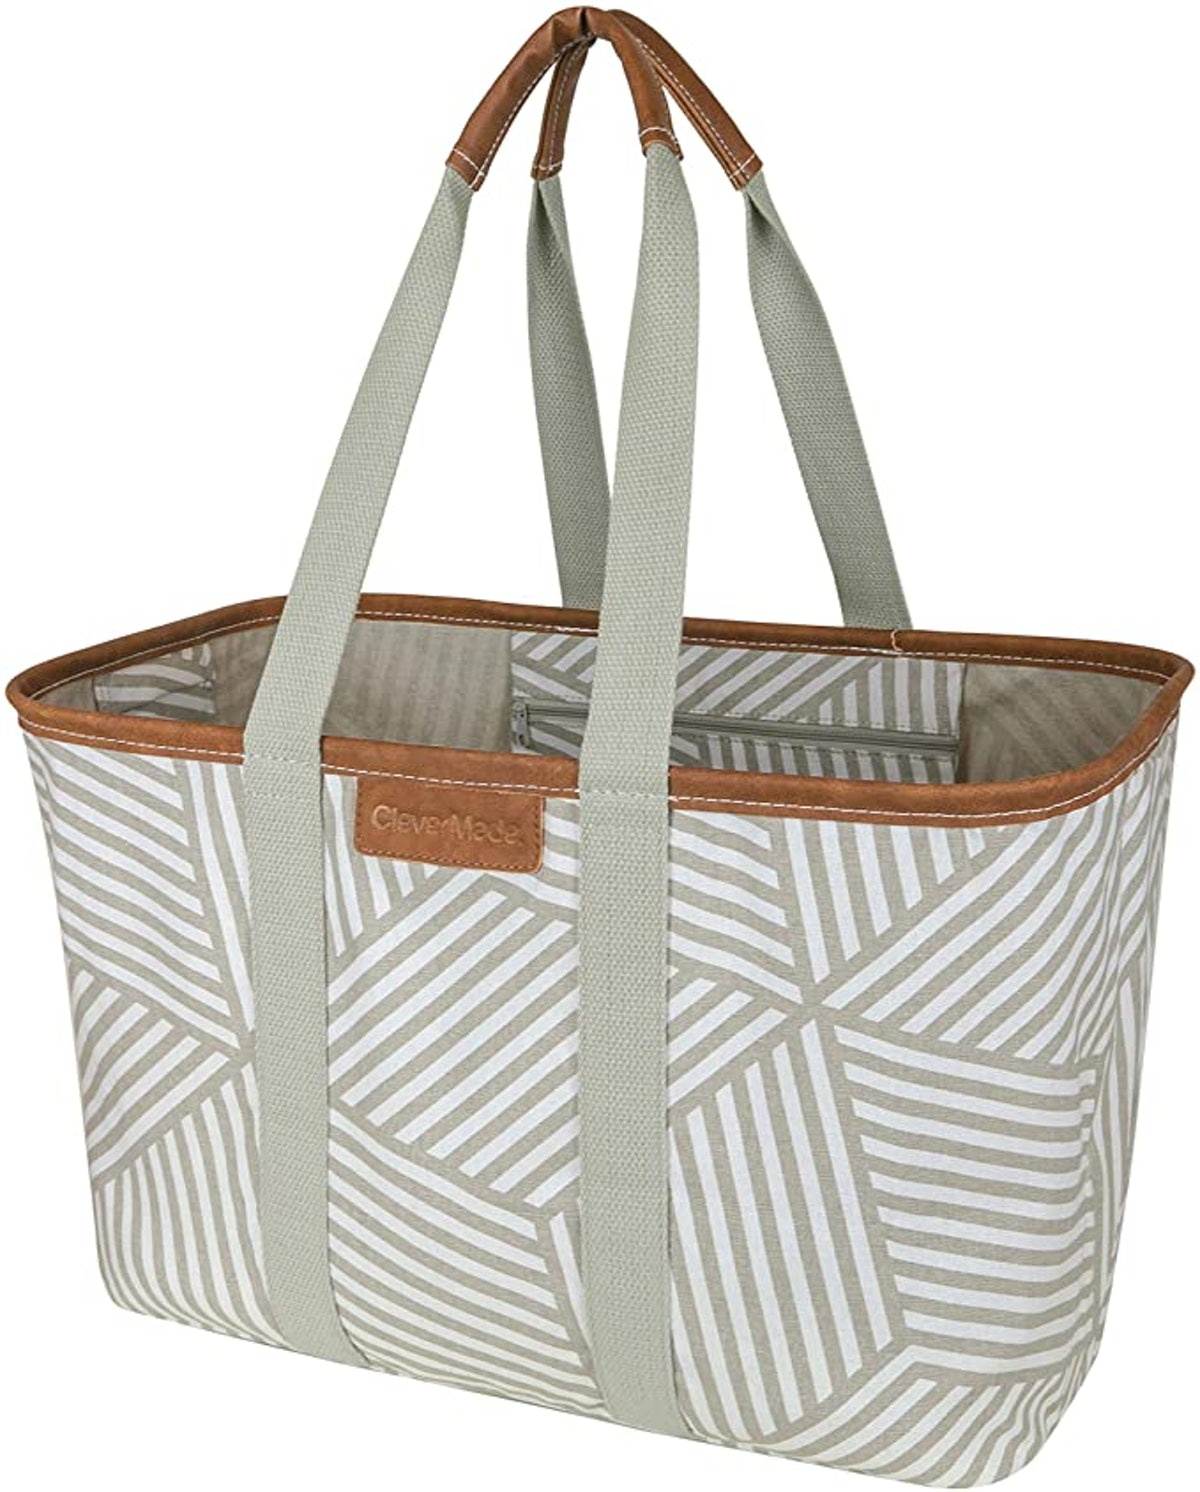 CleverMade SnapBasket Luxe Shopping Tote Bag